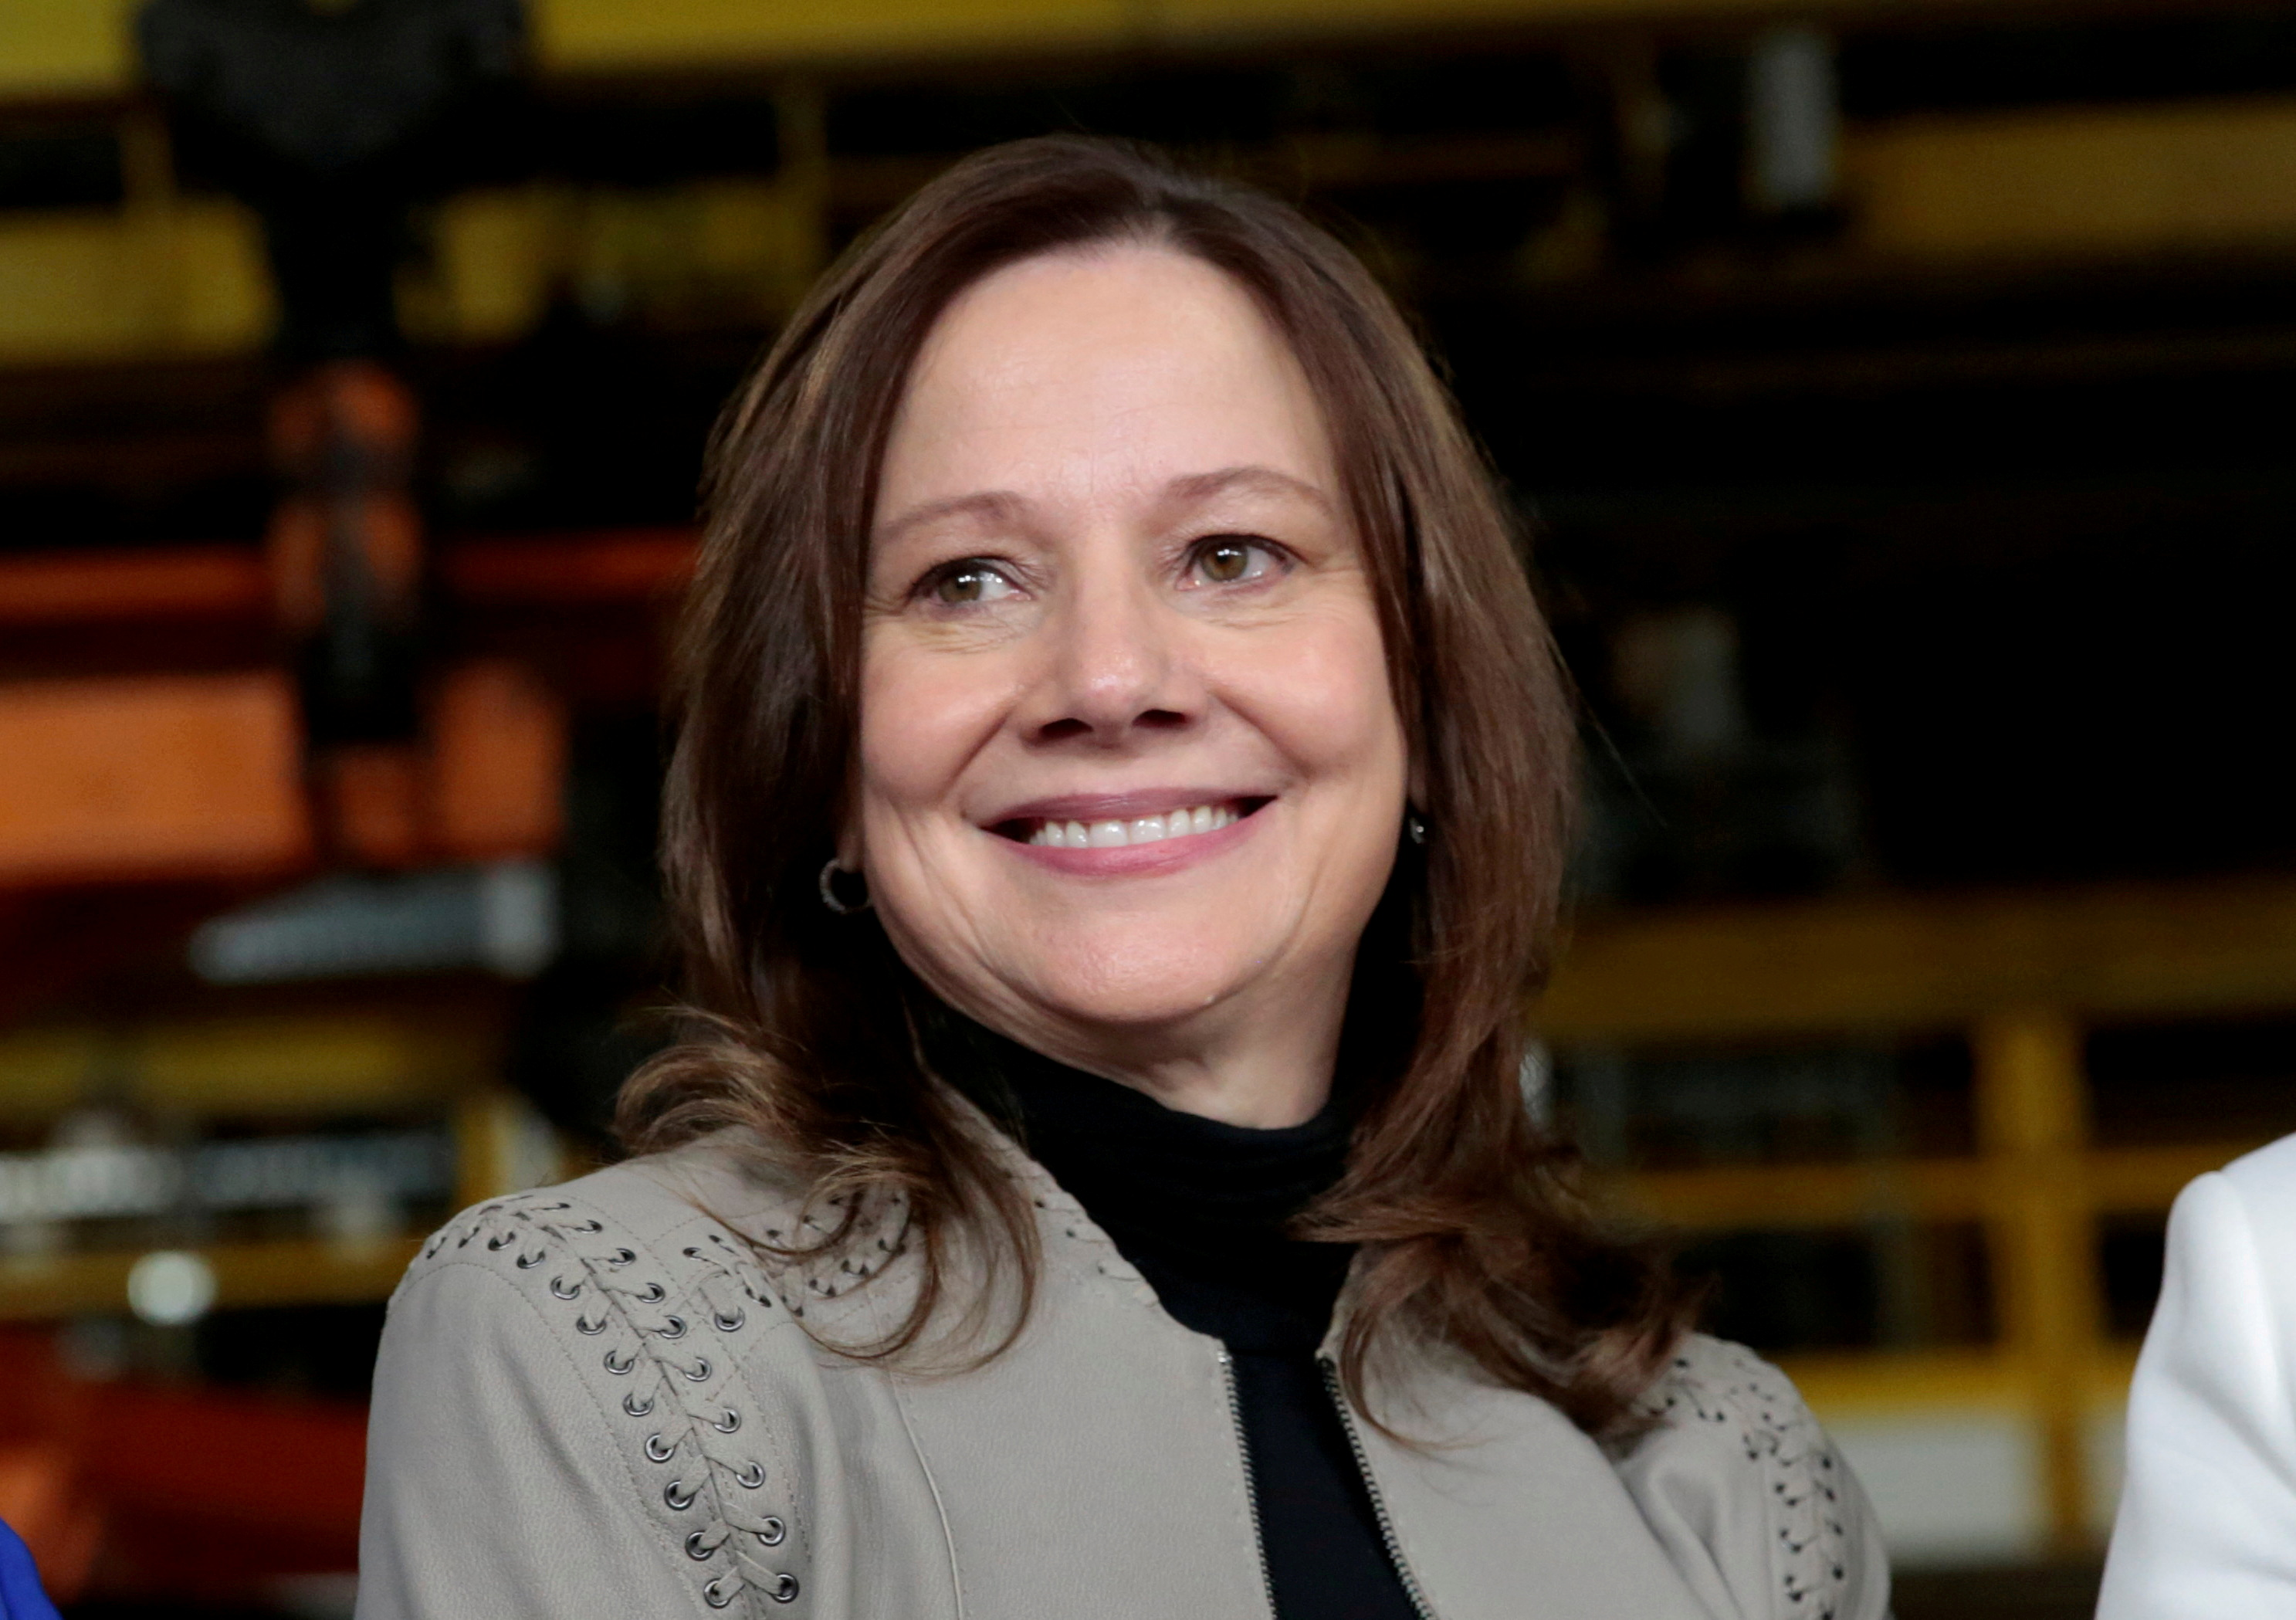 General Motors Chief Executive Officer Mary Barra poses after making an announcement of a major investment focused on the development of GM future technologies at the GM Orion Assembly Plant in Lake Orion, Michigan, U.S. March 22, 2019.  REUTERS/Rebecca Cook/File Photo